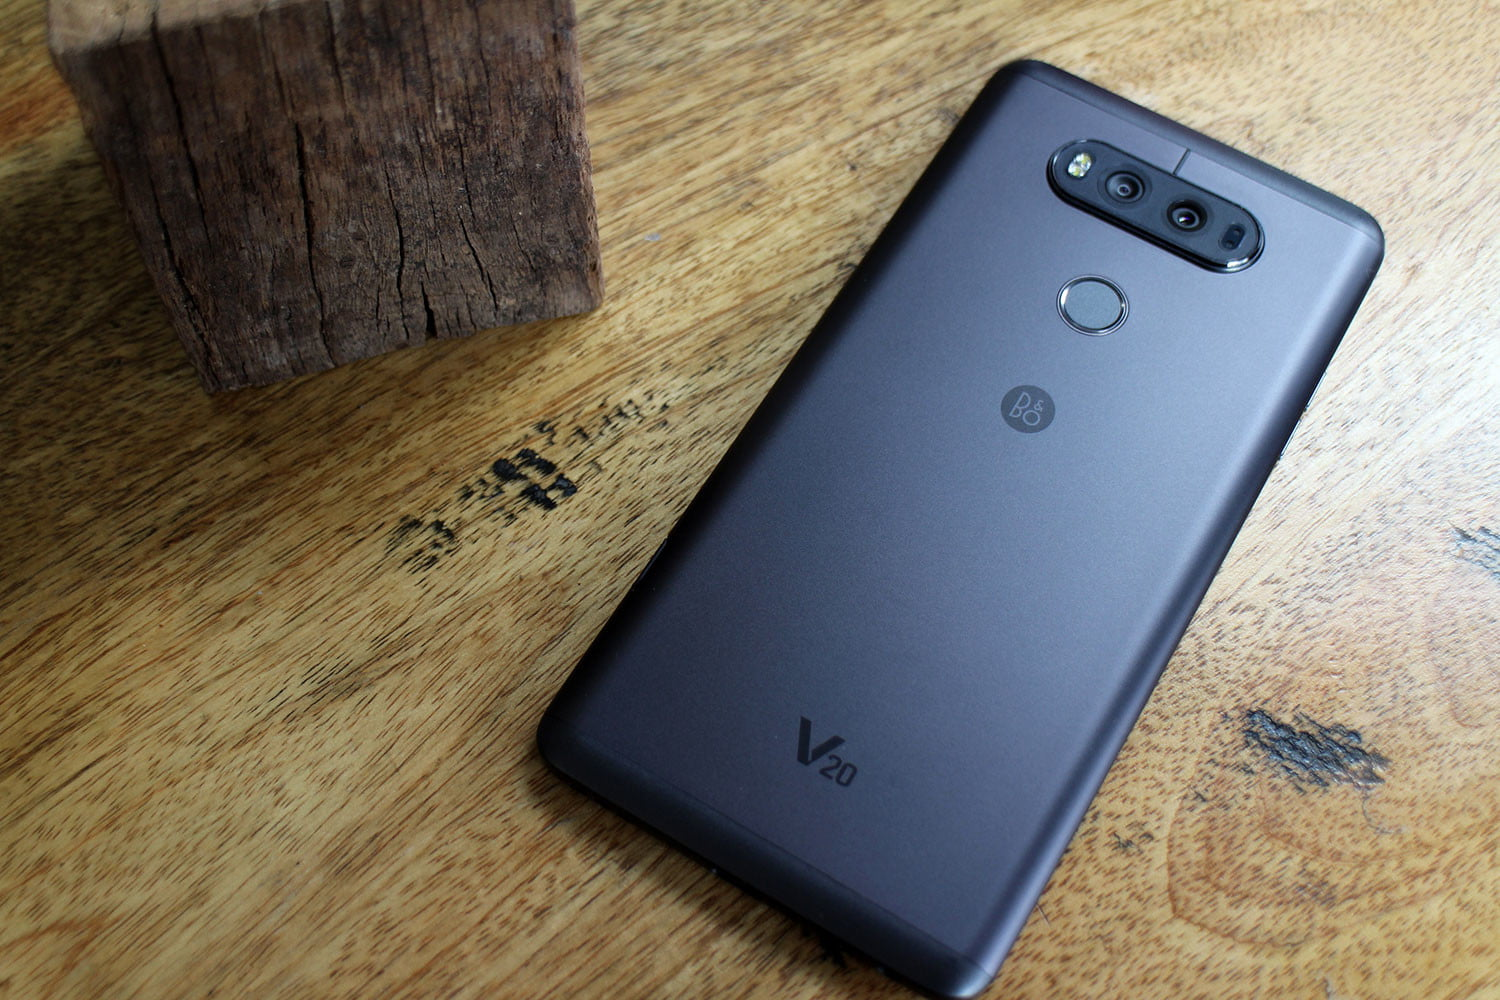 The 15 Best Lg V20 Cases And Covers Page 2 Digital Trends Case Iphone Xr Spigen Carbon Fiber Softcase Rugged Armor Casing